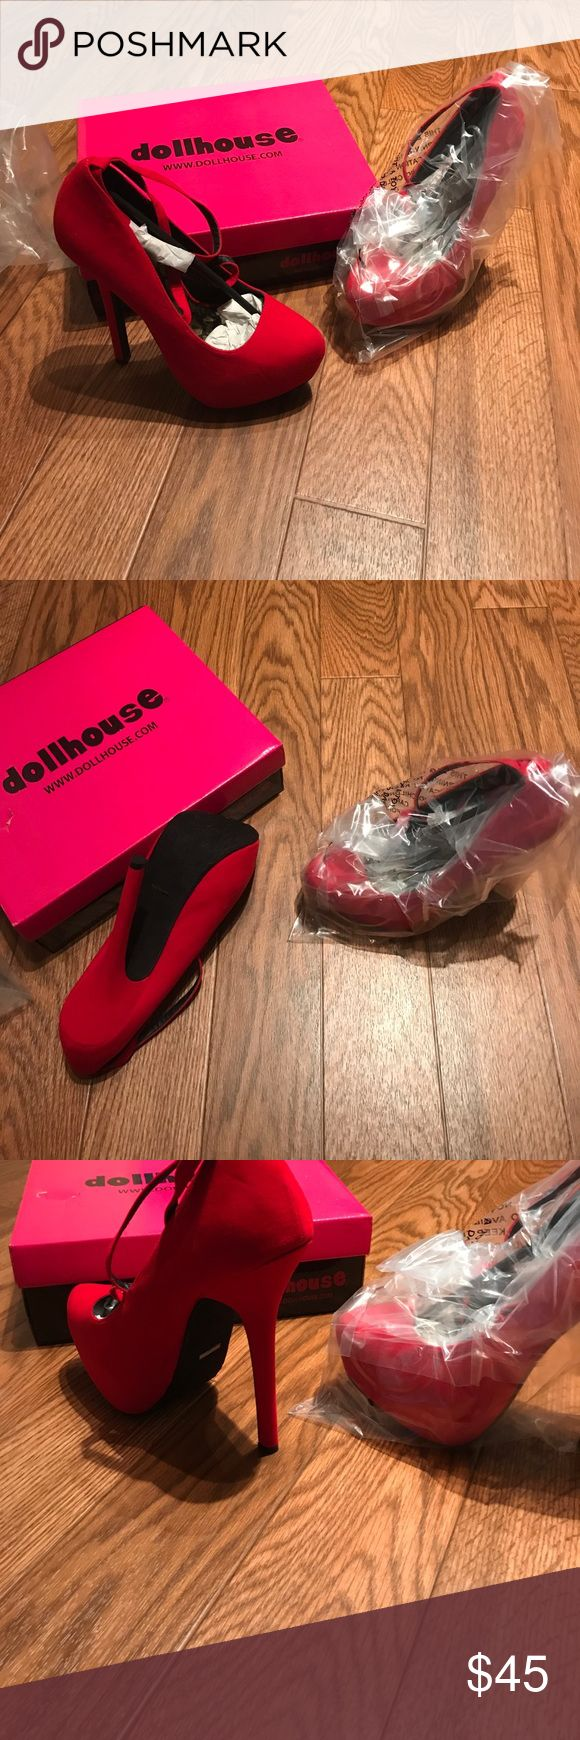 New Dollhouse red high heel pumps with box size 9 New with box dollhouse red high heels . With Poshmark fees and not covering shipping for shoes would like to ship without box or will cost more. Marked size 9 ... questions welcomed Dollhouse Shoes Heels